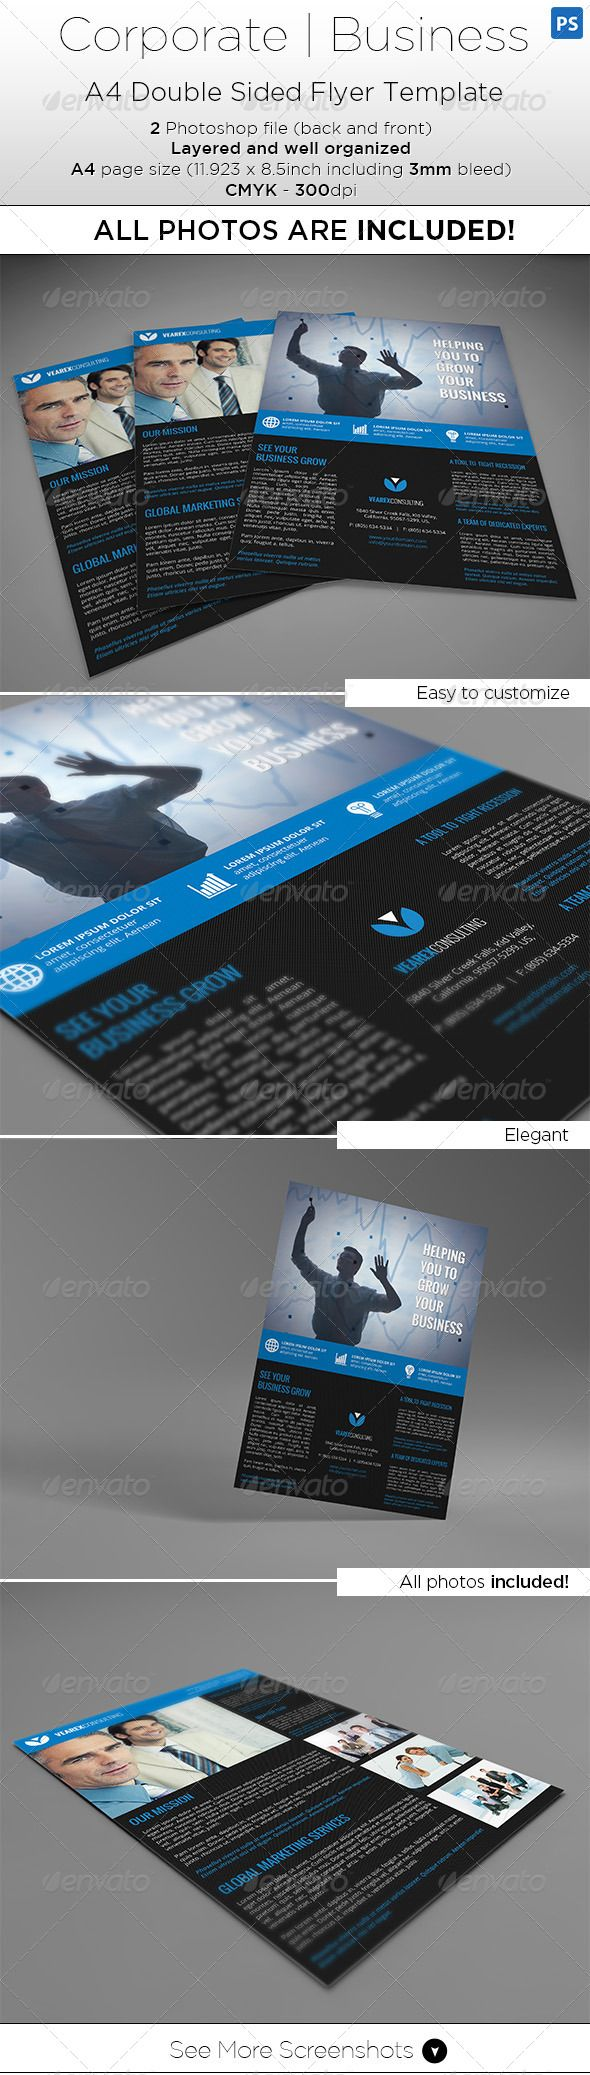 A4 Double Side Flyer Template All